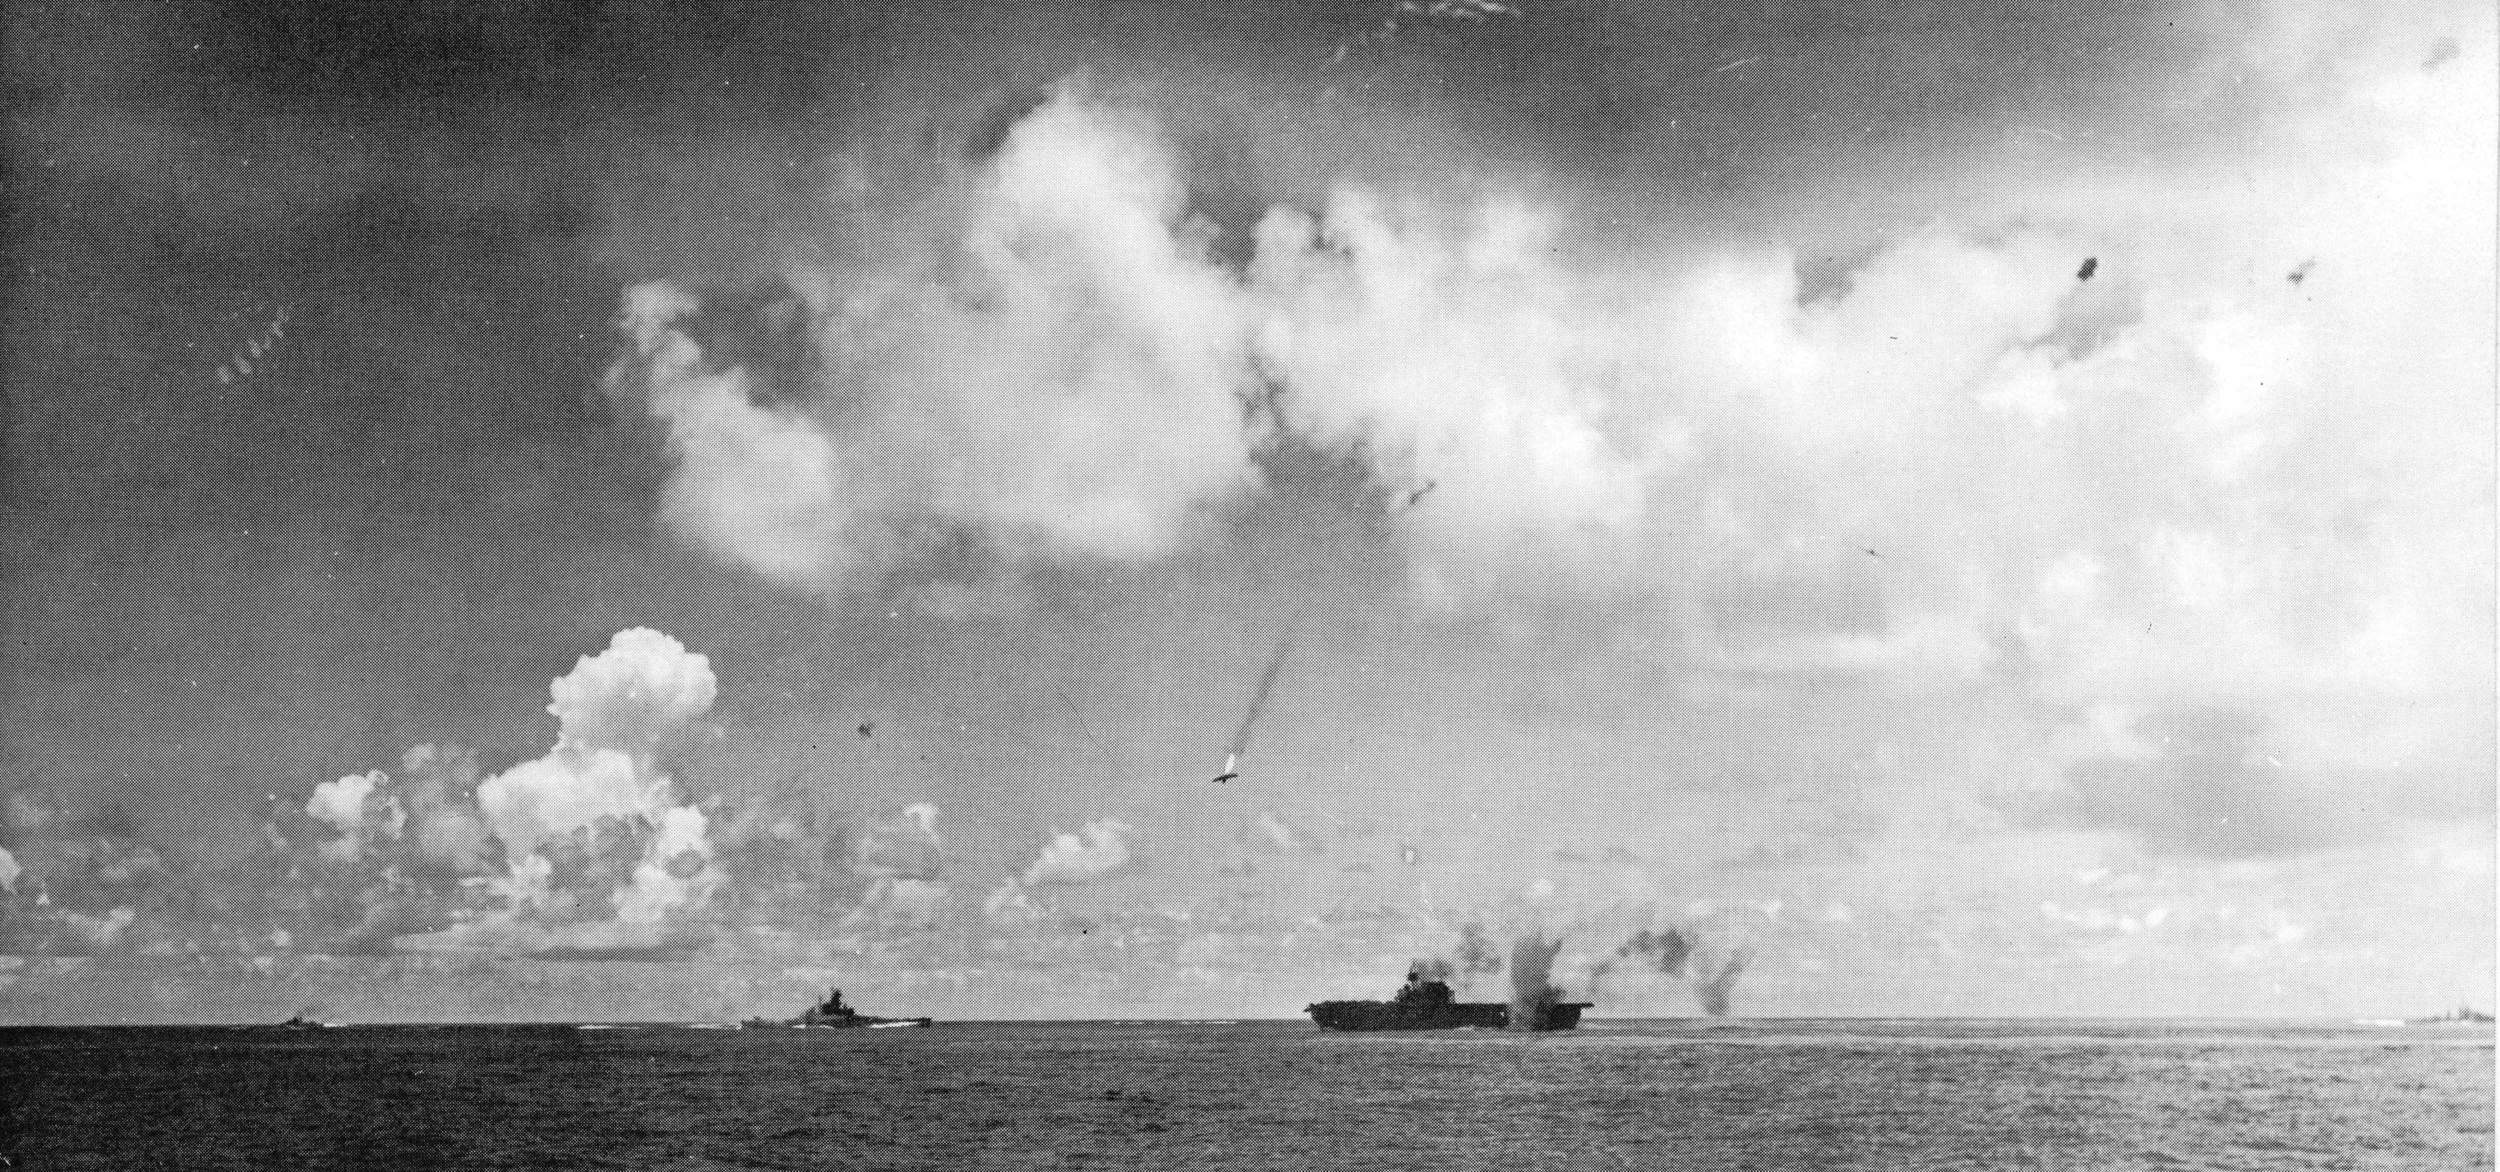 A Japanese bomber is shot down in flames as USS ENTERPRISE suffers a near-miss during the battle of Santa Cruz.